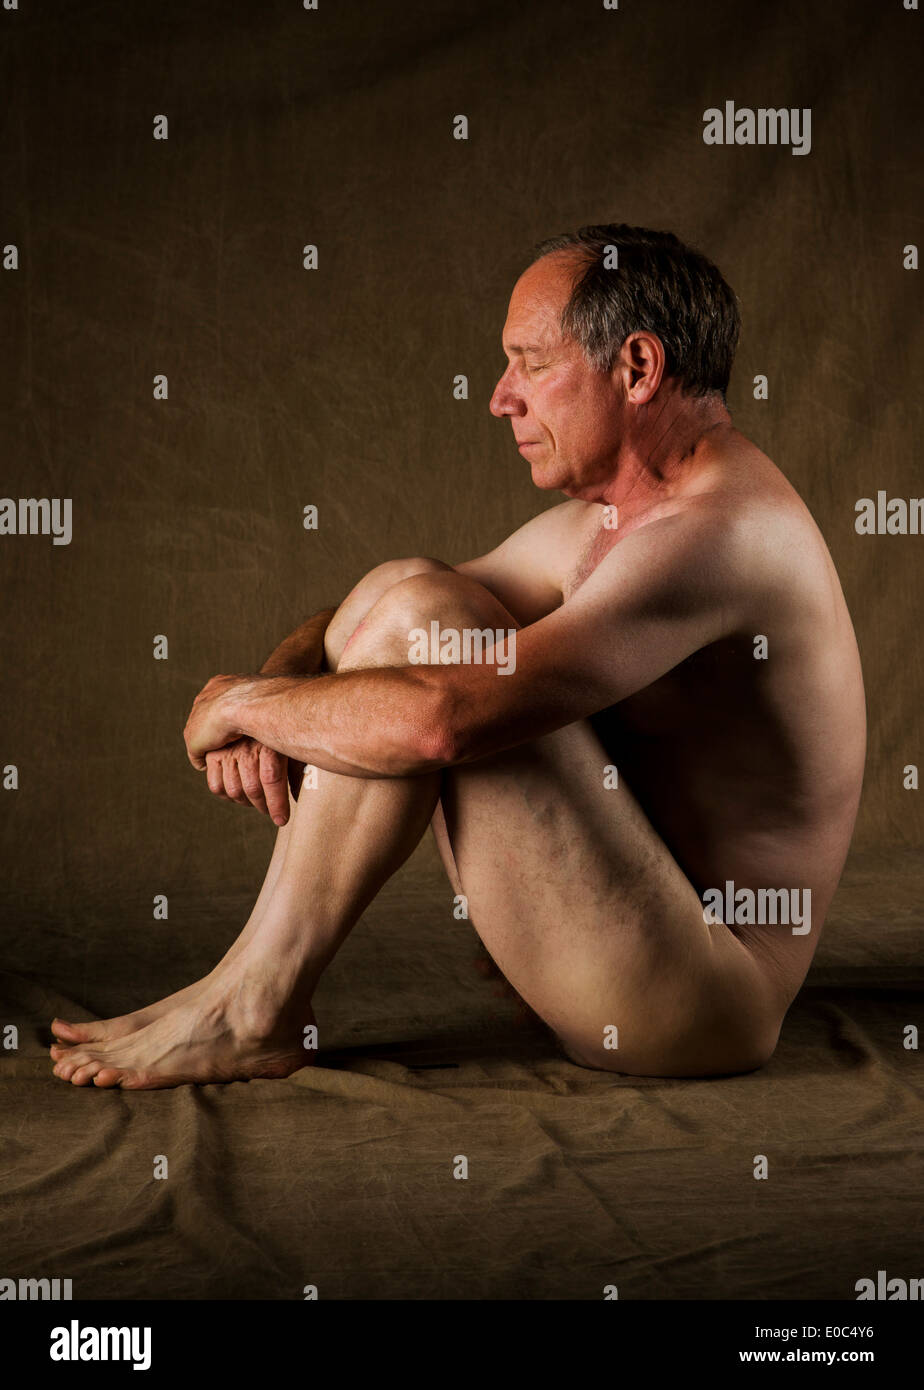 Nude Photographic Portrait Of Middle Aged Male In A Commercial Photography Studio